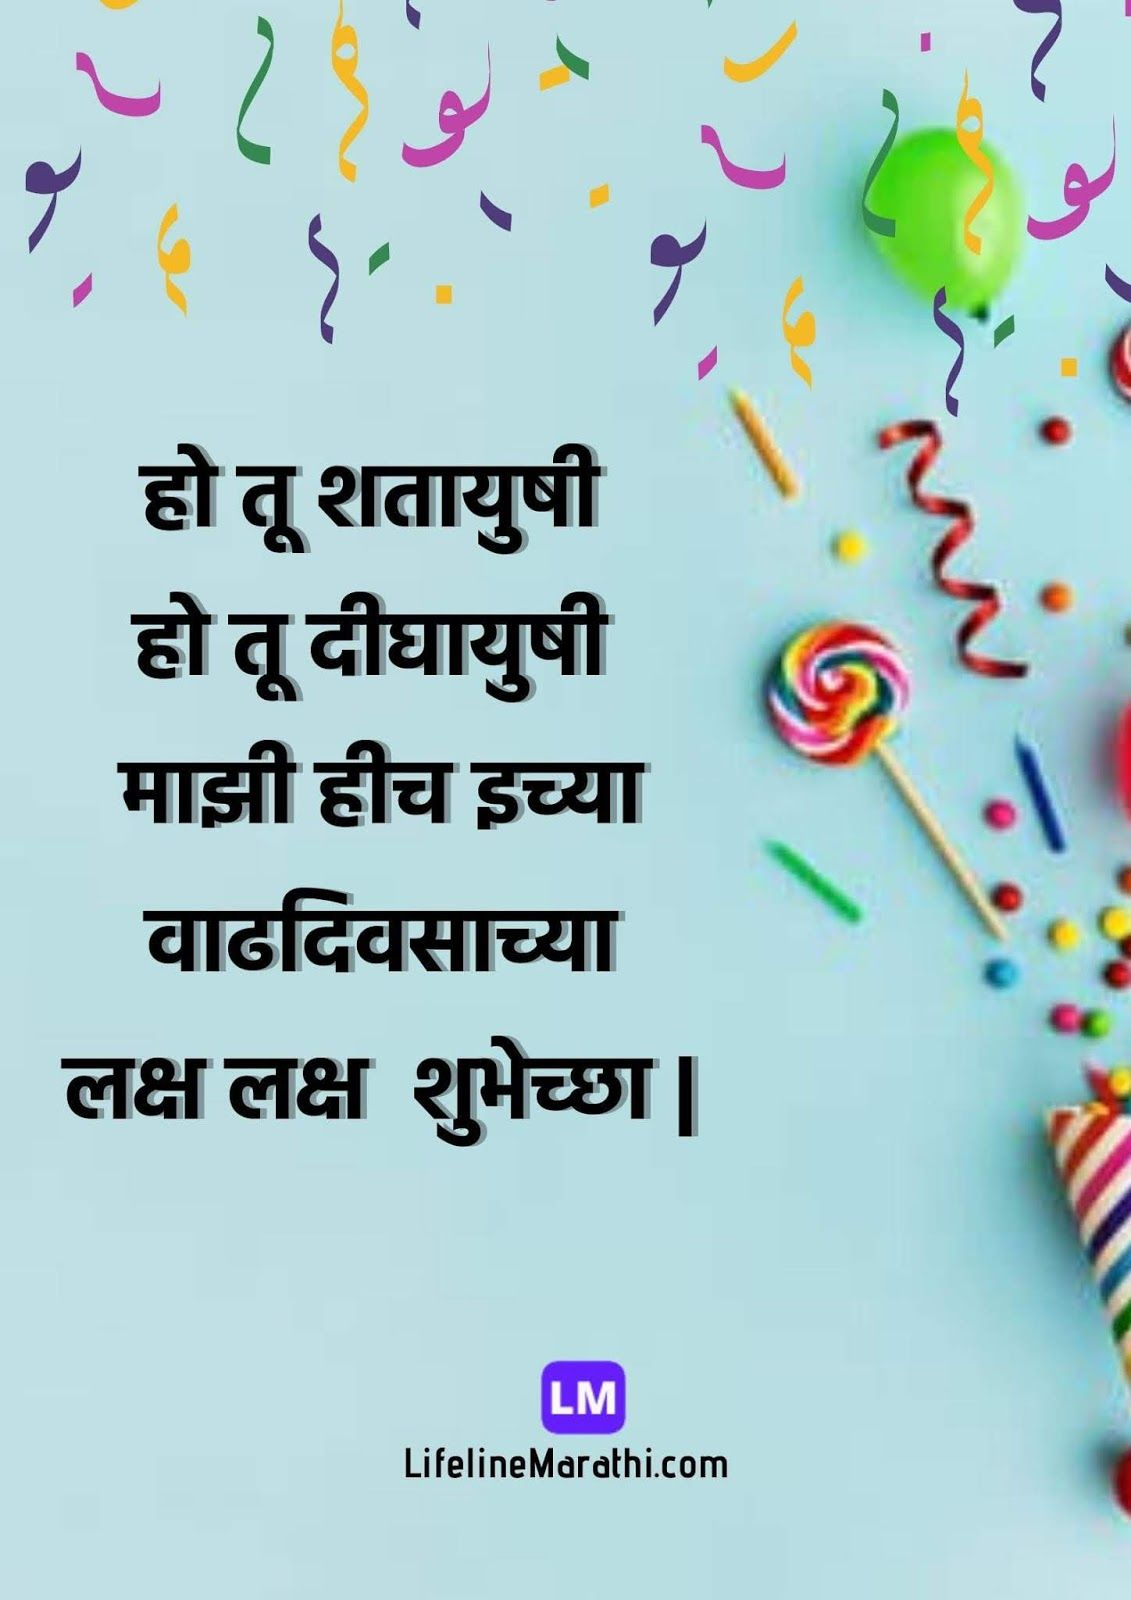 Birthday Wishes In Marathi With Image In 2020 Birthday Wishes For Friend Happy Birthday Wishes Quotes Happy Birthday Wishes